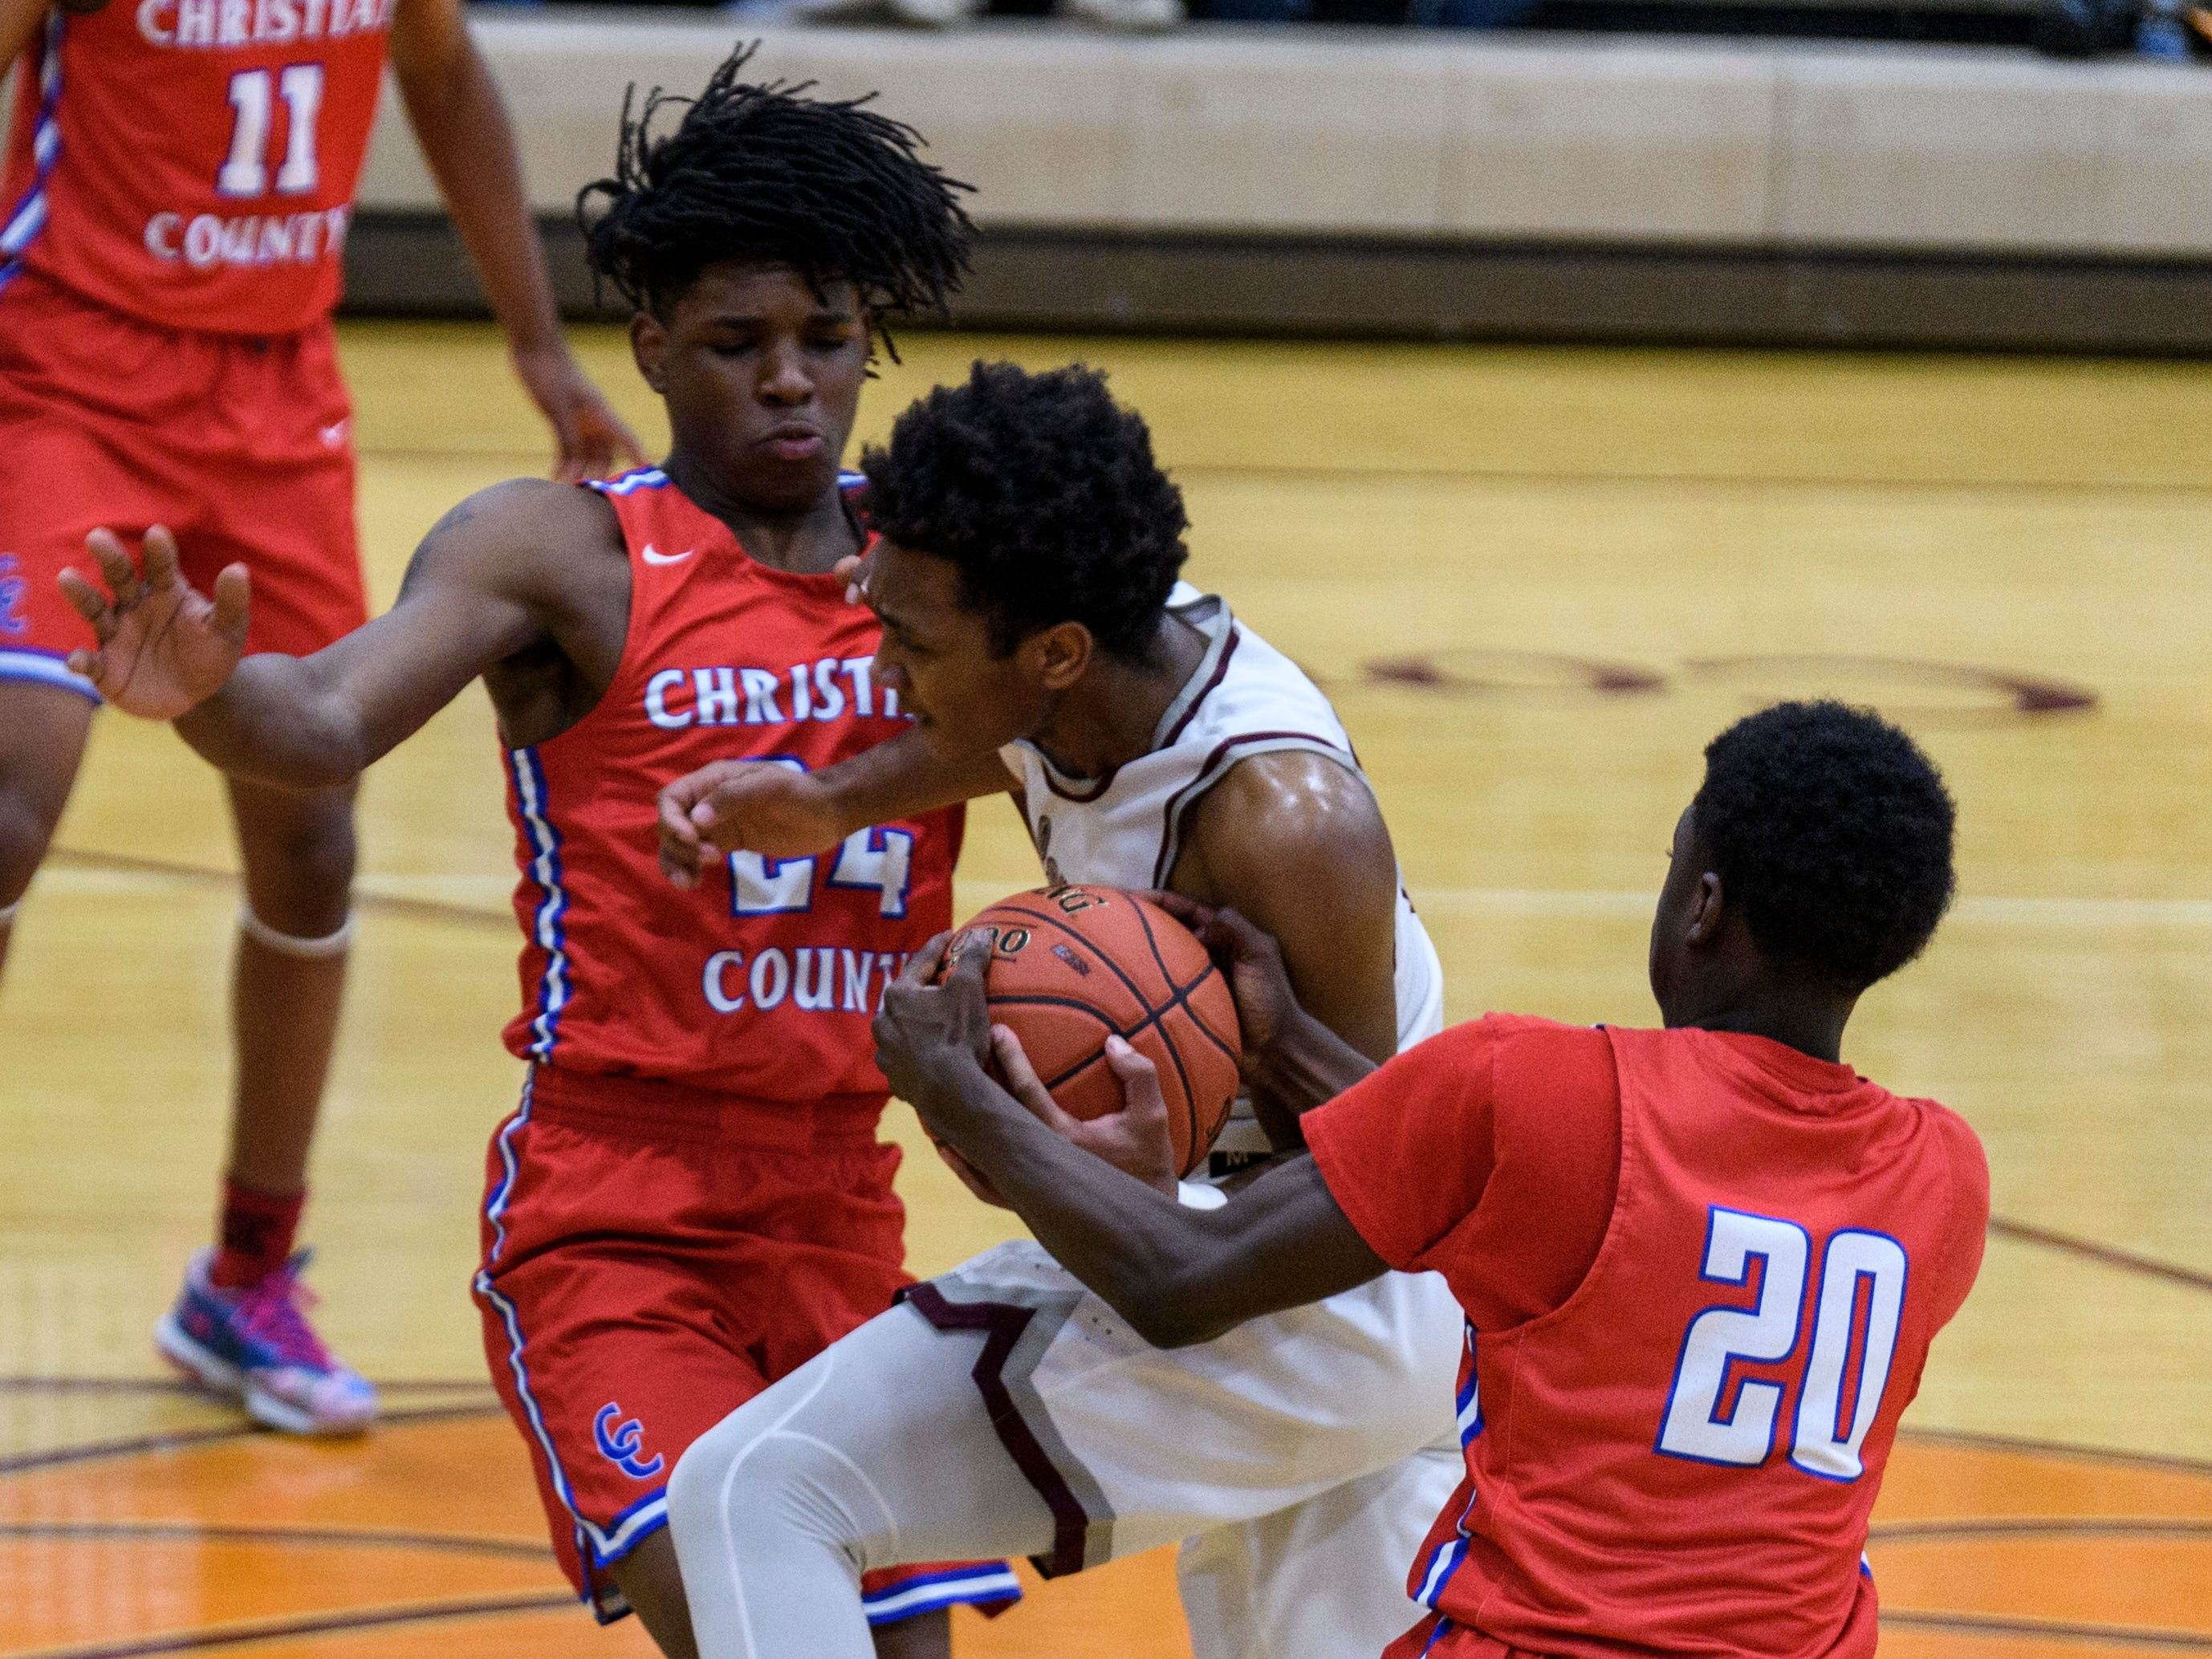 Christian County's Stephen Bussell (24) assists Christian County's Marquadion Chambers (20) as he steals the ball from Henderson's Daymian Dixon (3) during the first quarter at Henderson County High School in Henderson, Ky., Friday, Dec. 14, 2018. Christian County defeated Henderson County 79-71.